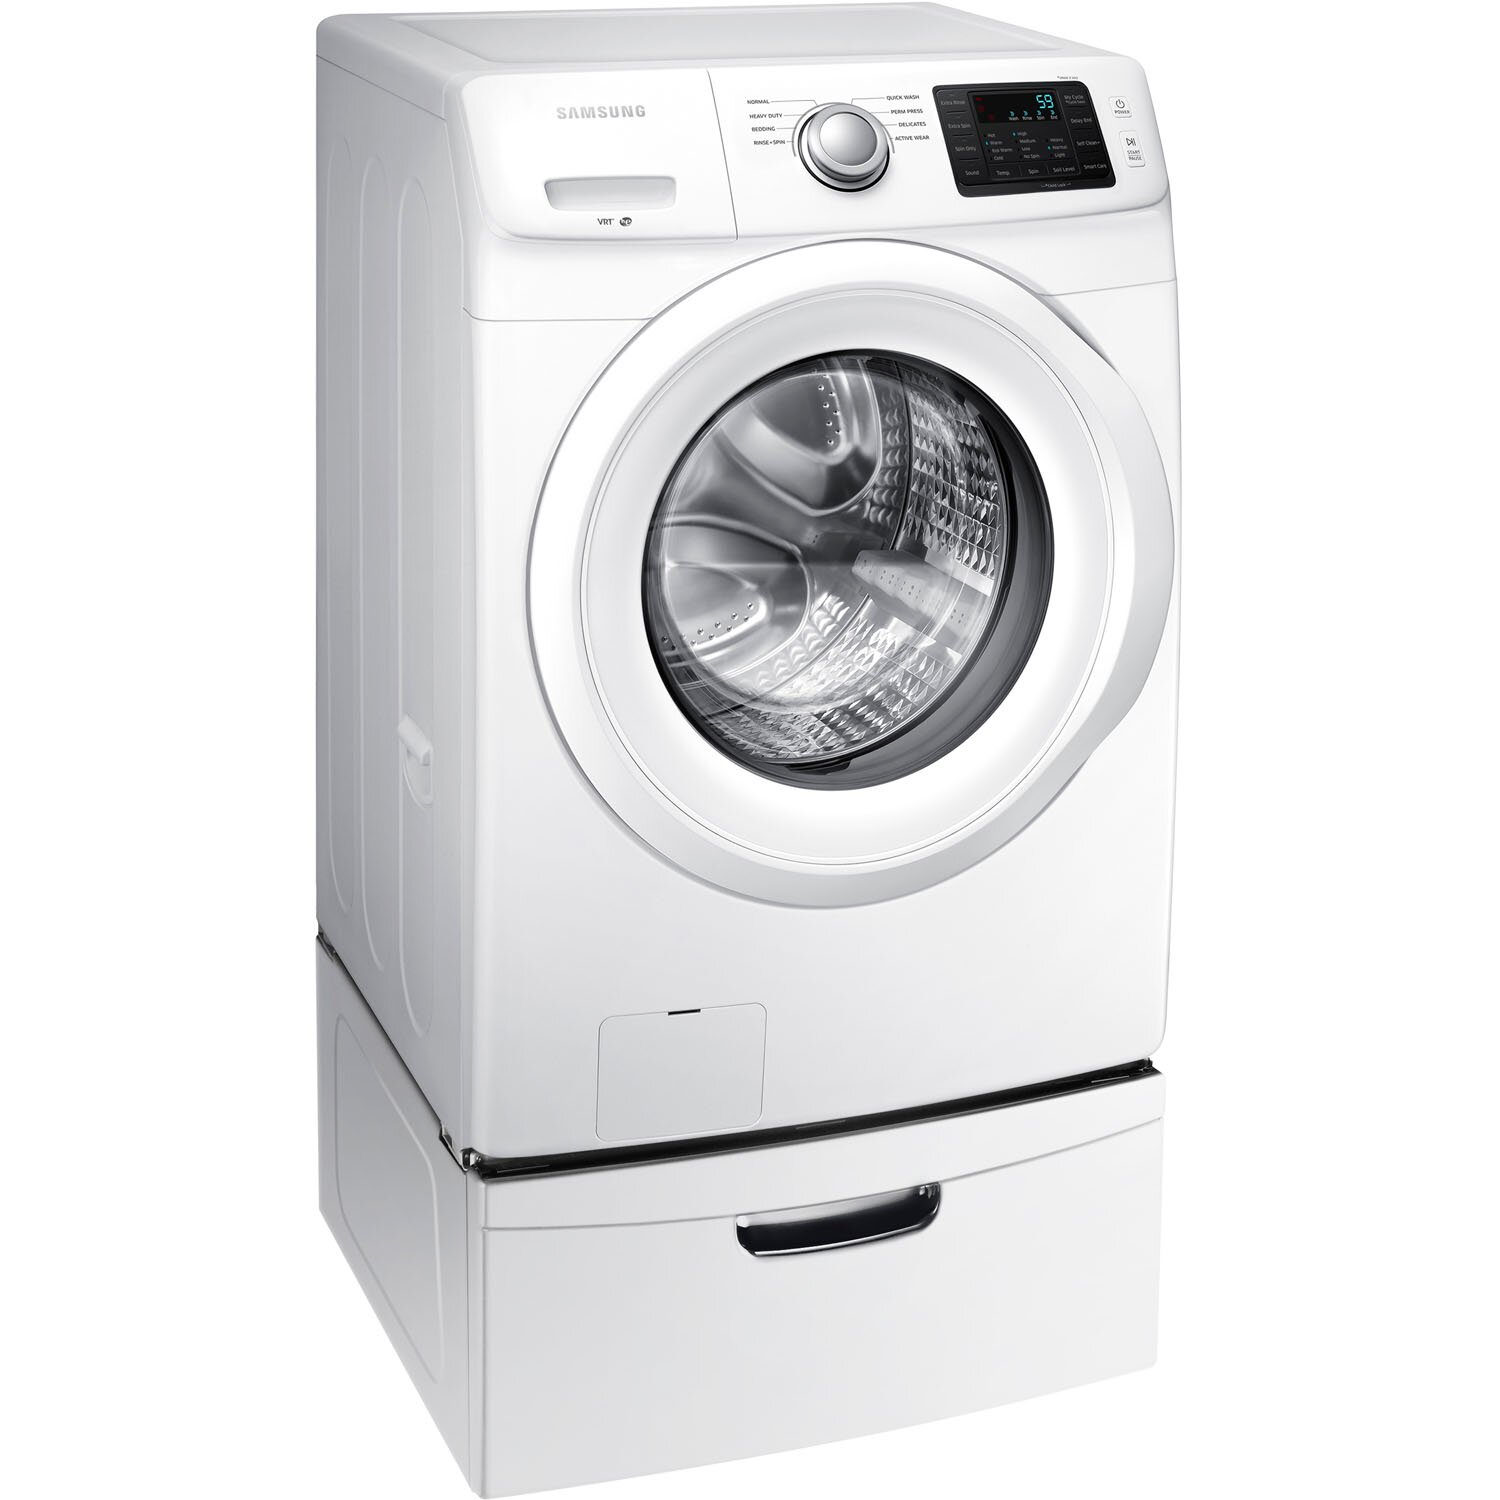 Regular Washer Vs He Washer Samsung Cu Ft Front Loading Washer Wfhaw